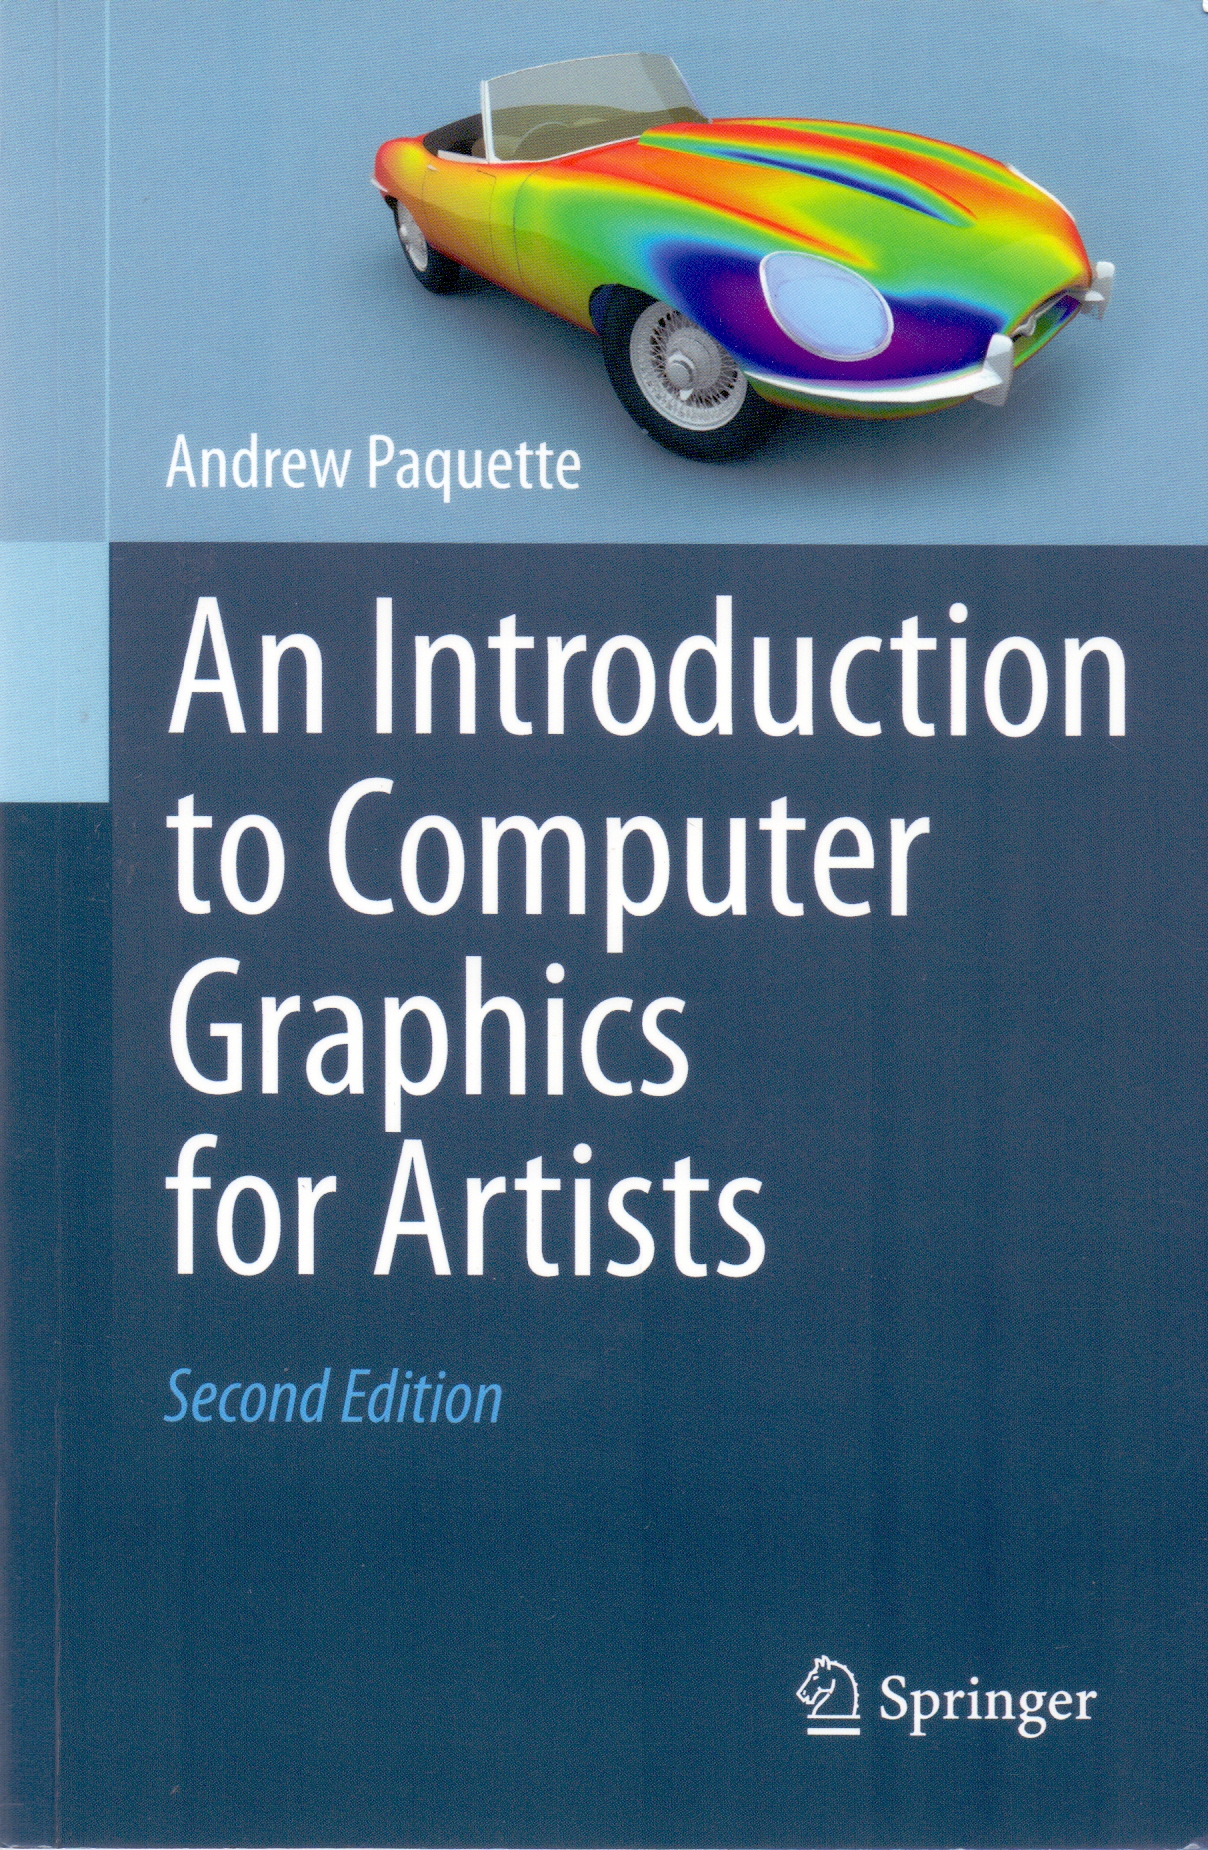 An Introduction to Computer Graphics for Artist...